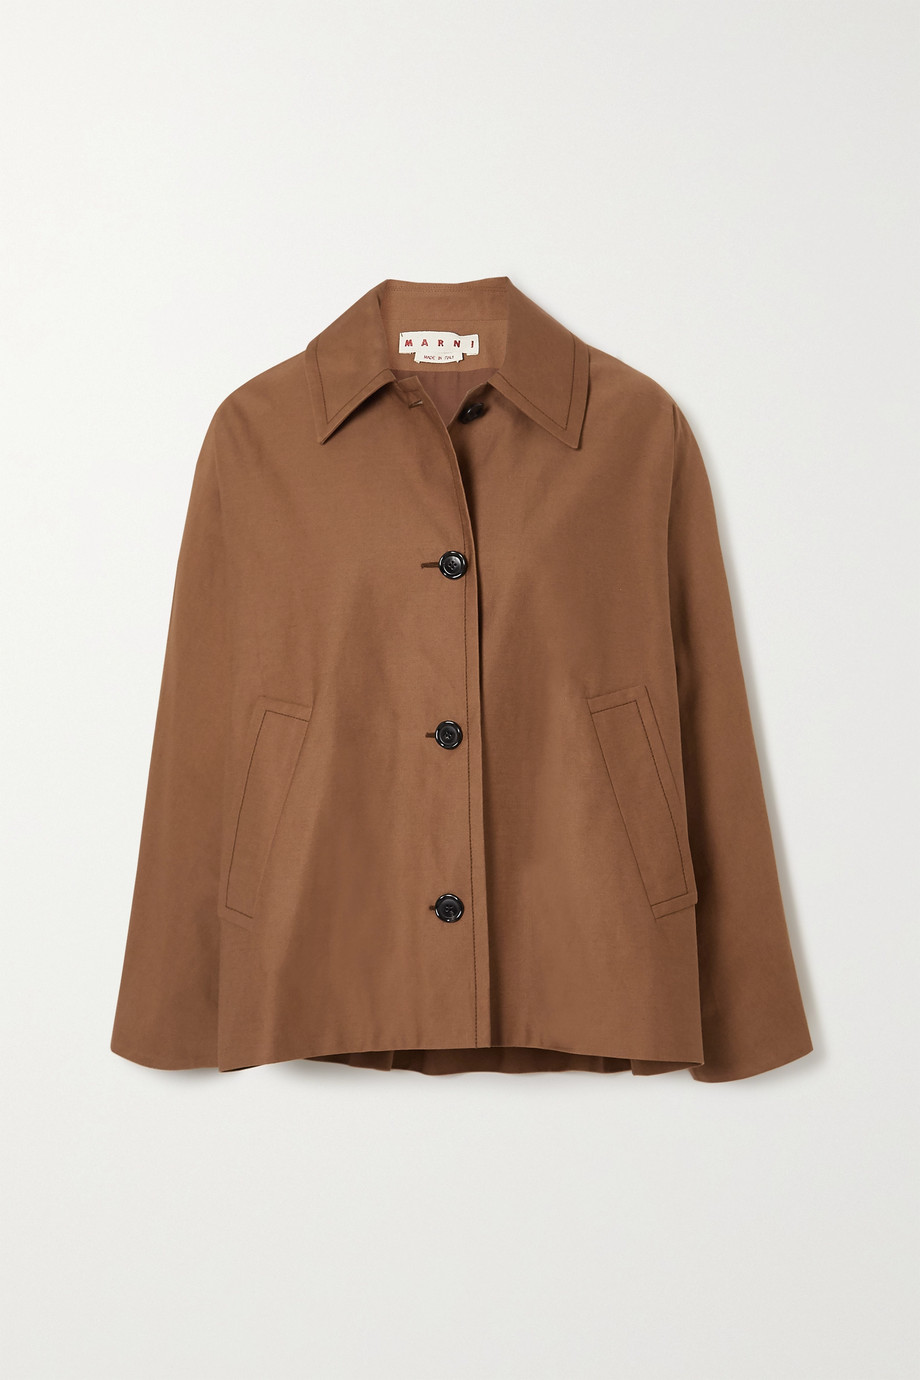 Marni Cotton and linen-blend jacket